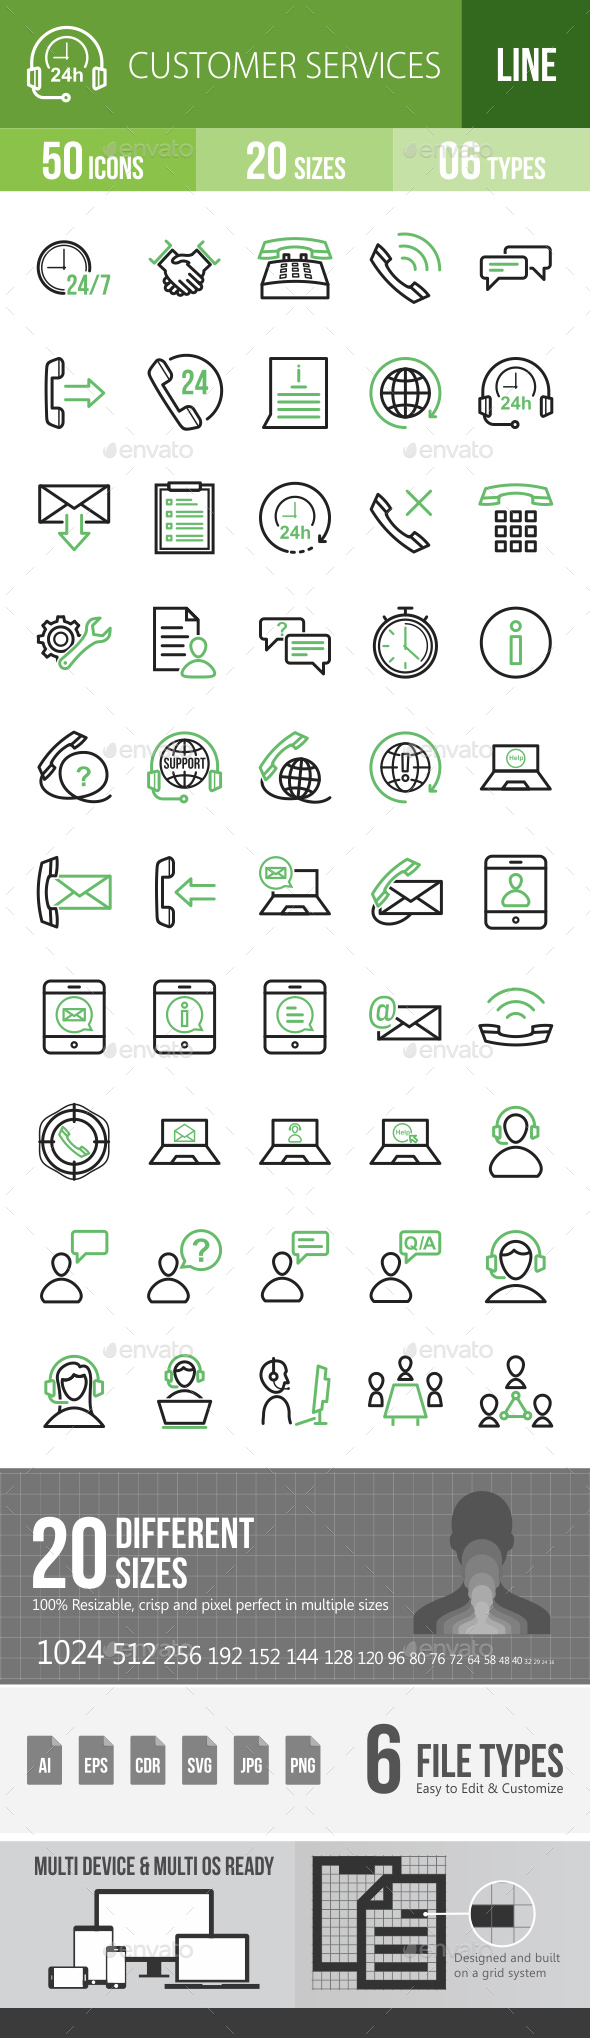 Customer Services Line Green & Black Icons - Icons